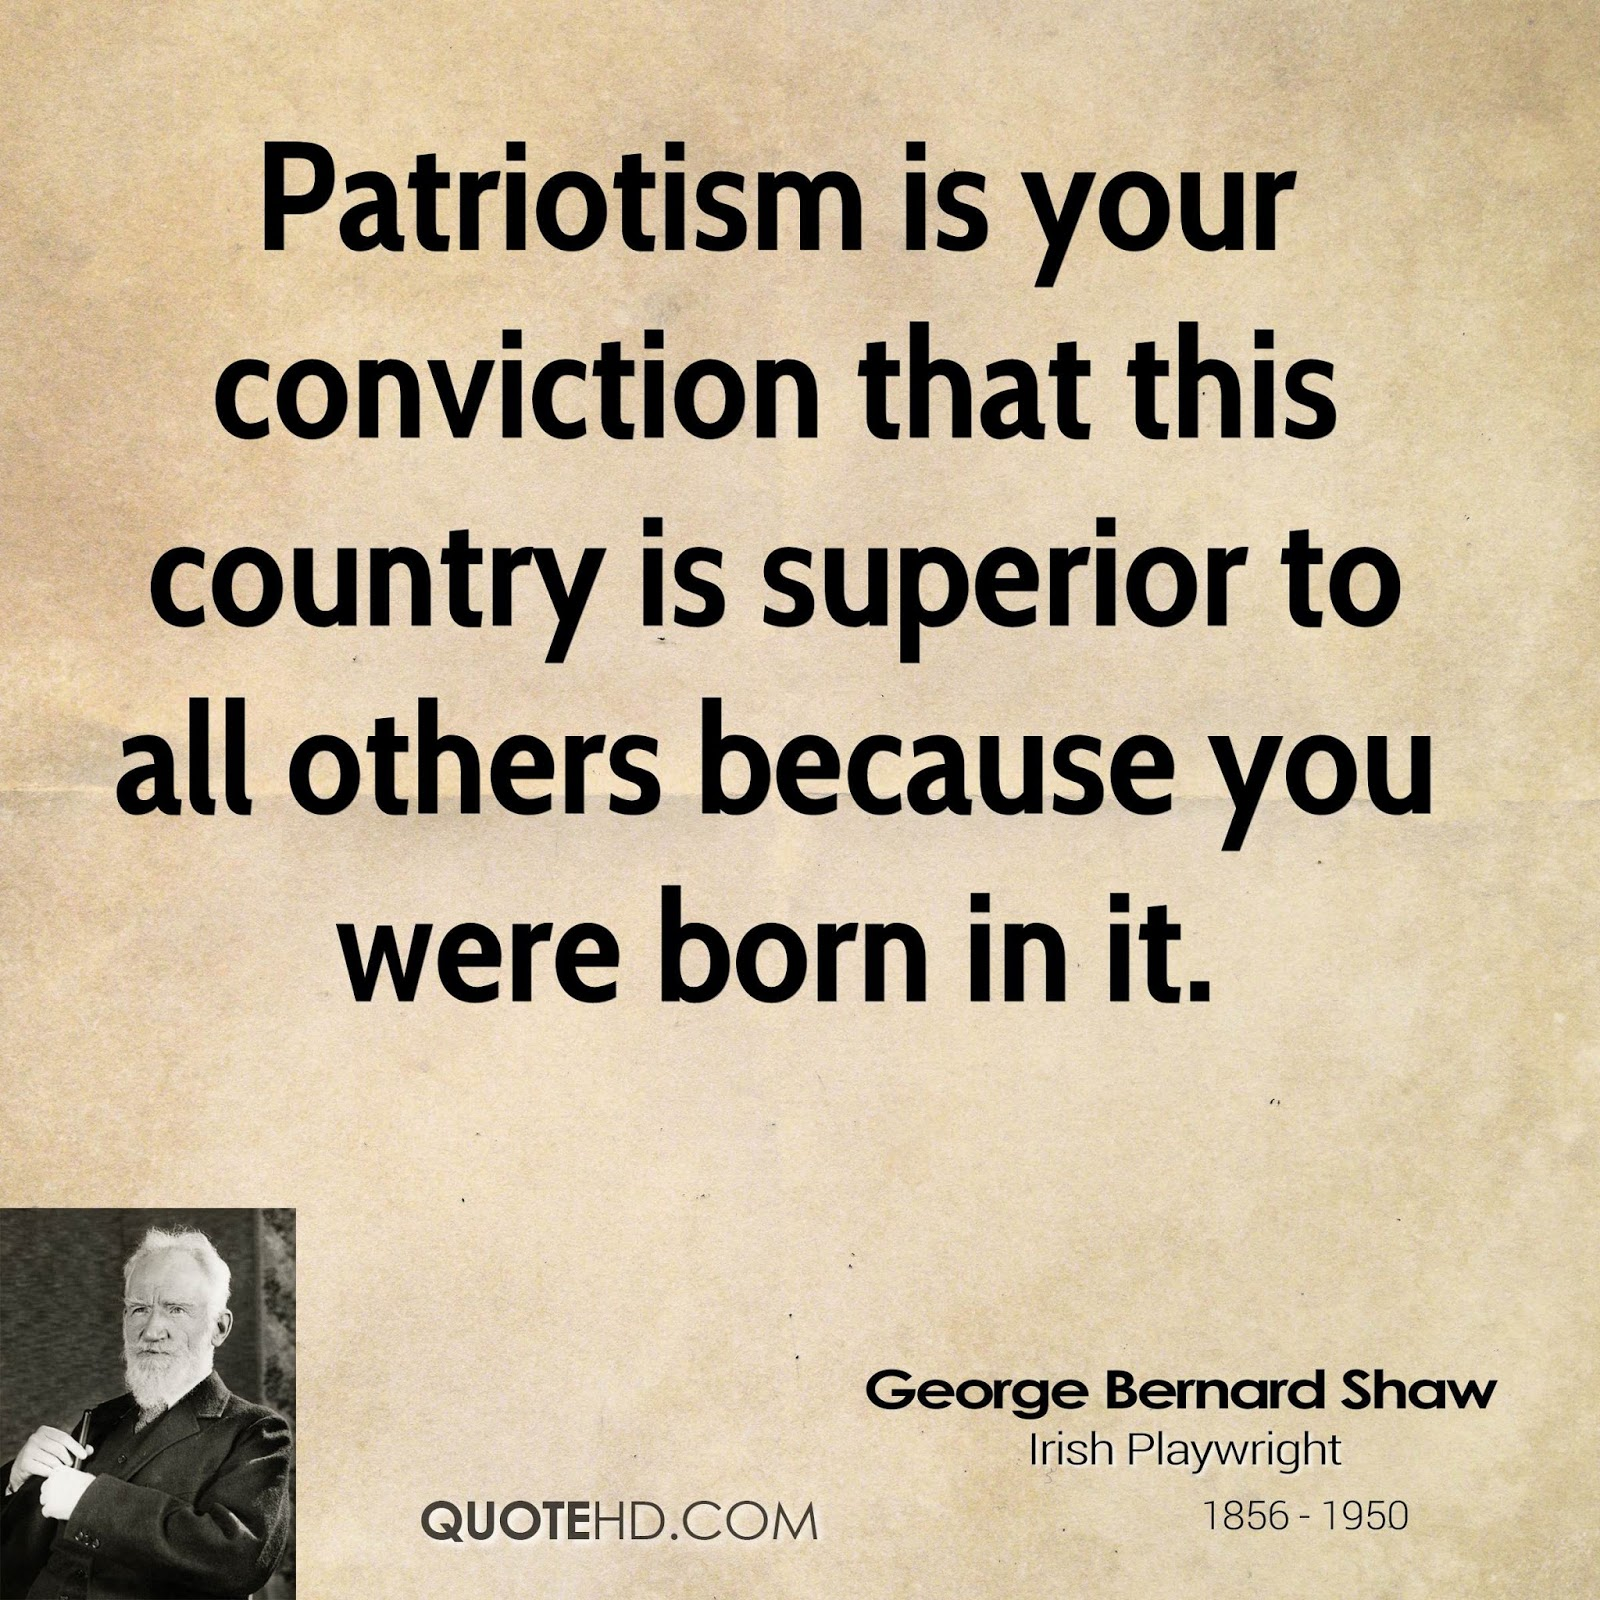 The Thoughts Of Chairman Bill: Patriotism